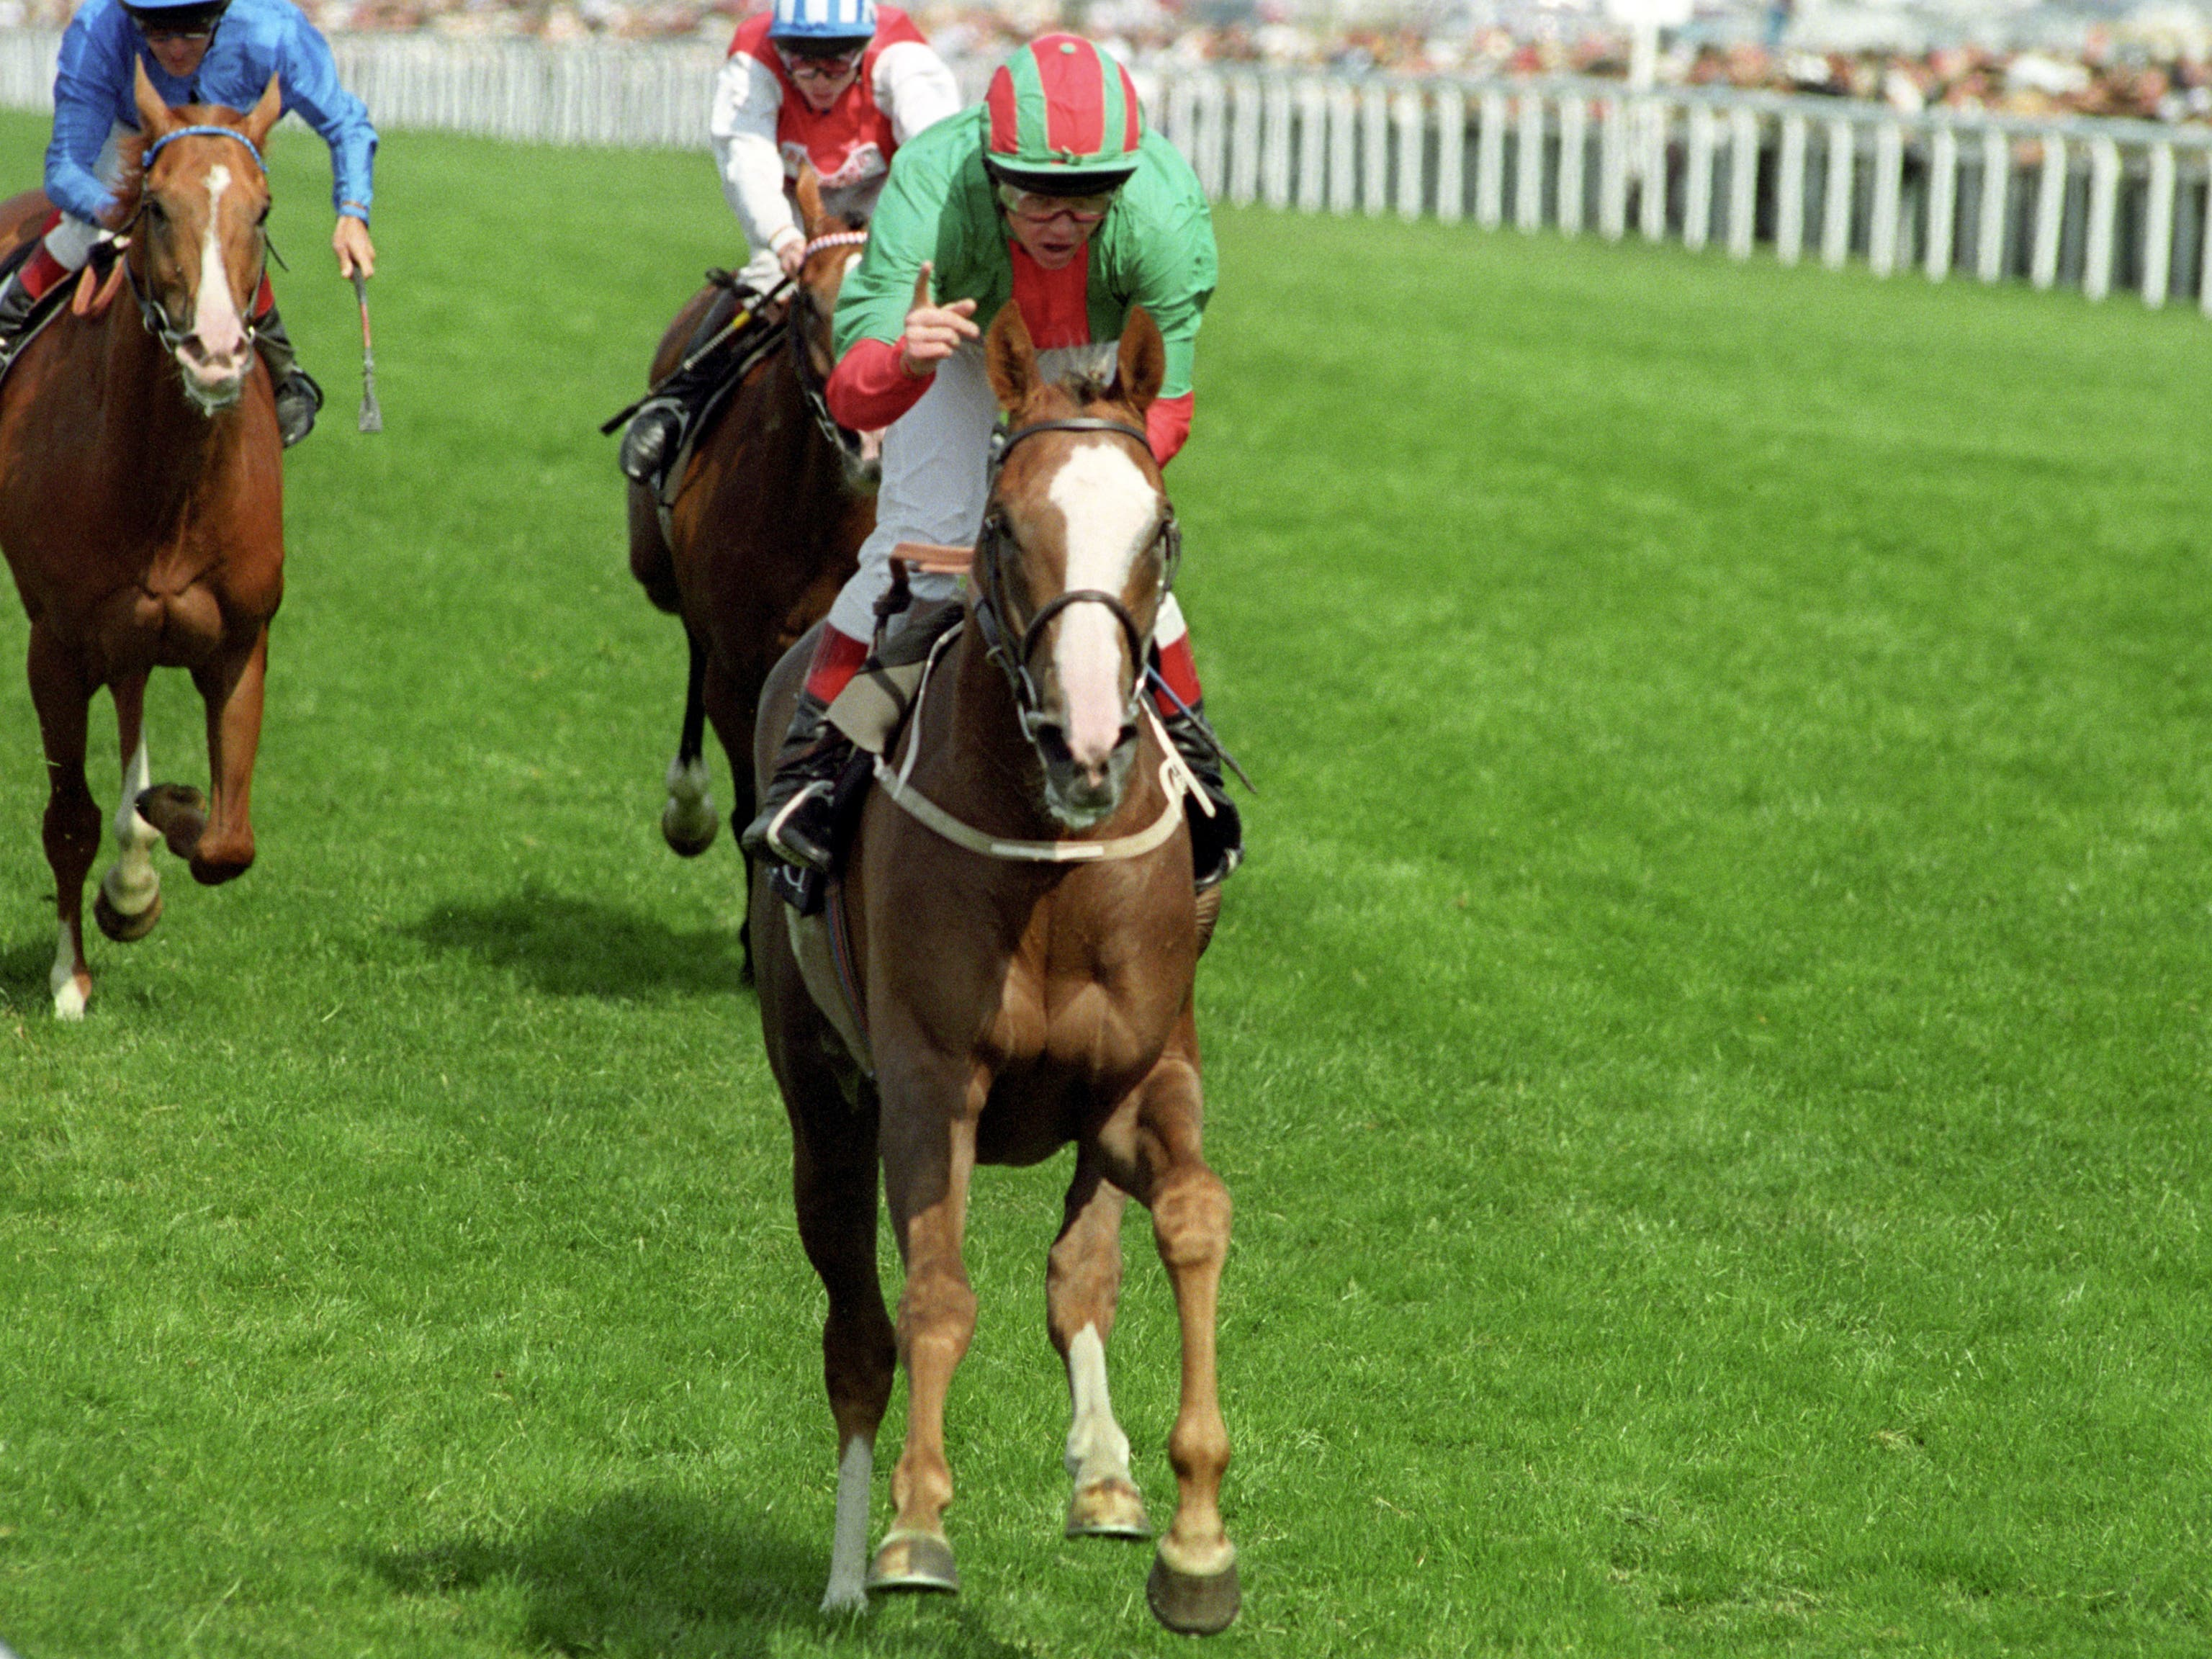 Double Trigger's finest hour, winning the Gold Cup at Ascot in 1995 (Neil Munns/PA)